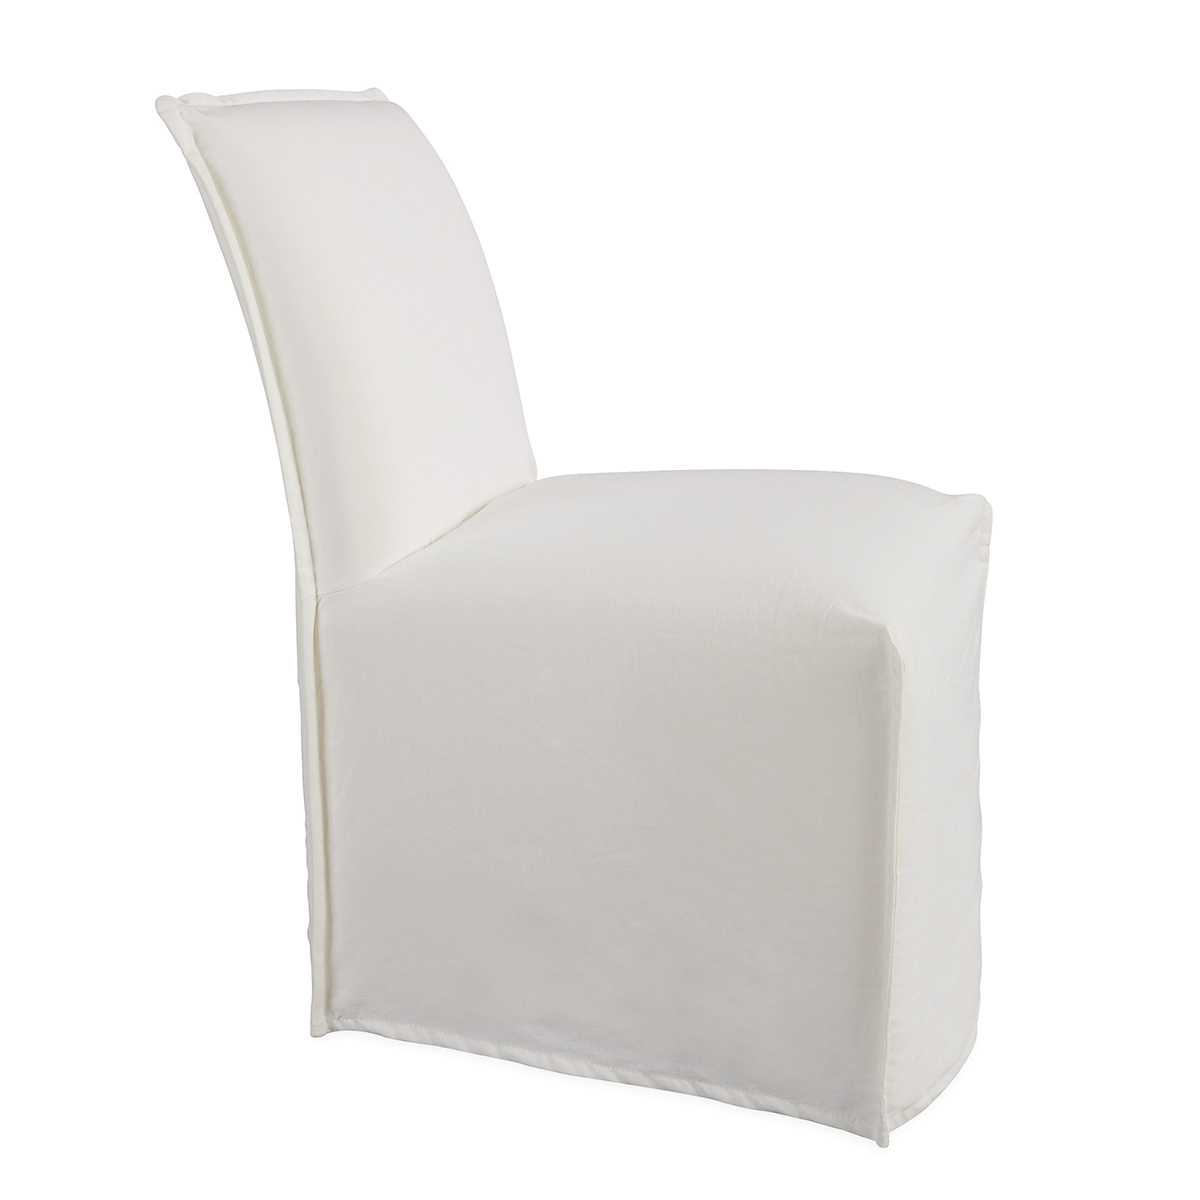 Slipcovered_Armless_Dining_Chair_C1747-01_side_Lee_Industries.jpg